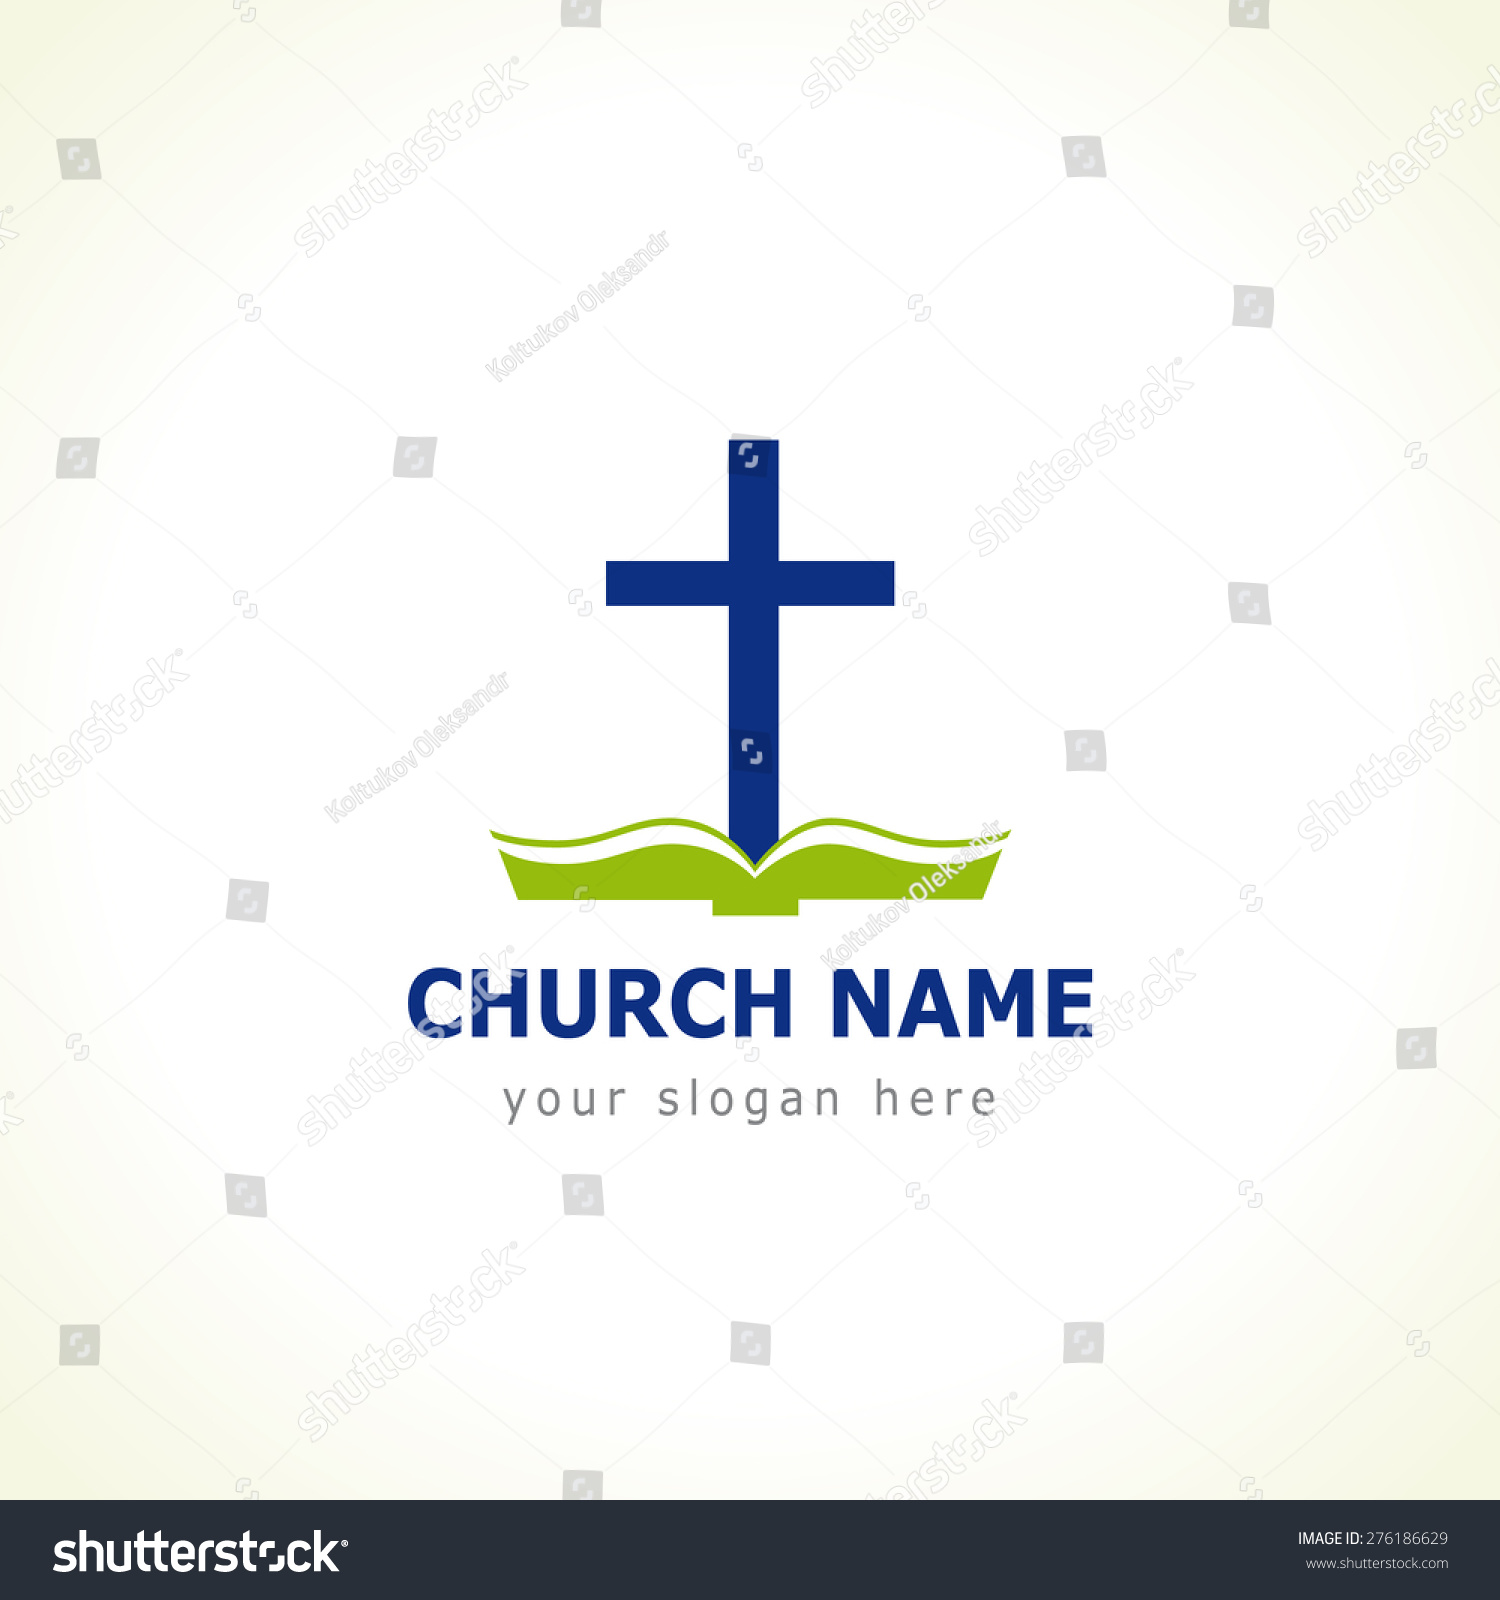 Template logo for the church in the form of a cross with the green Bible Bible cross church logo